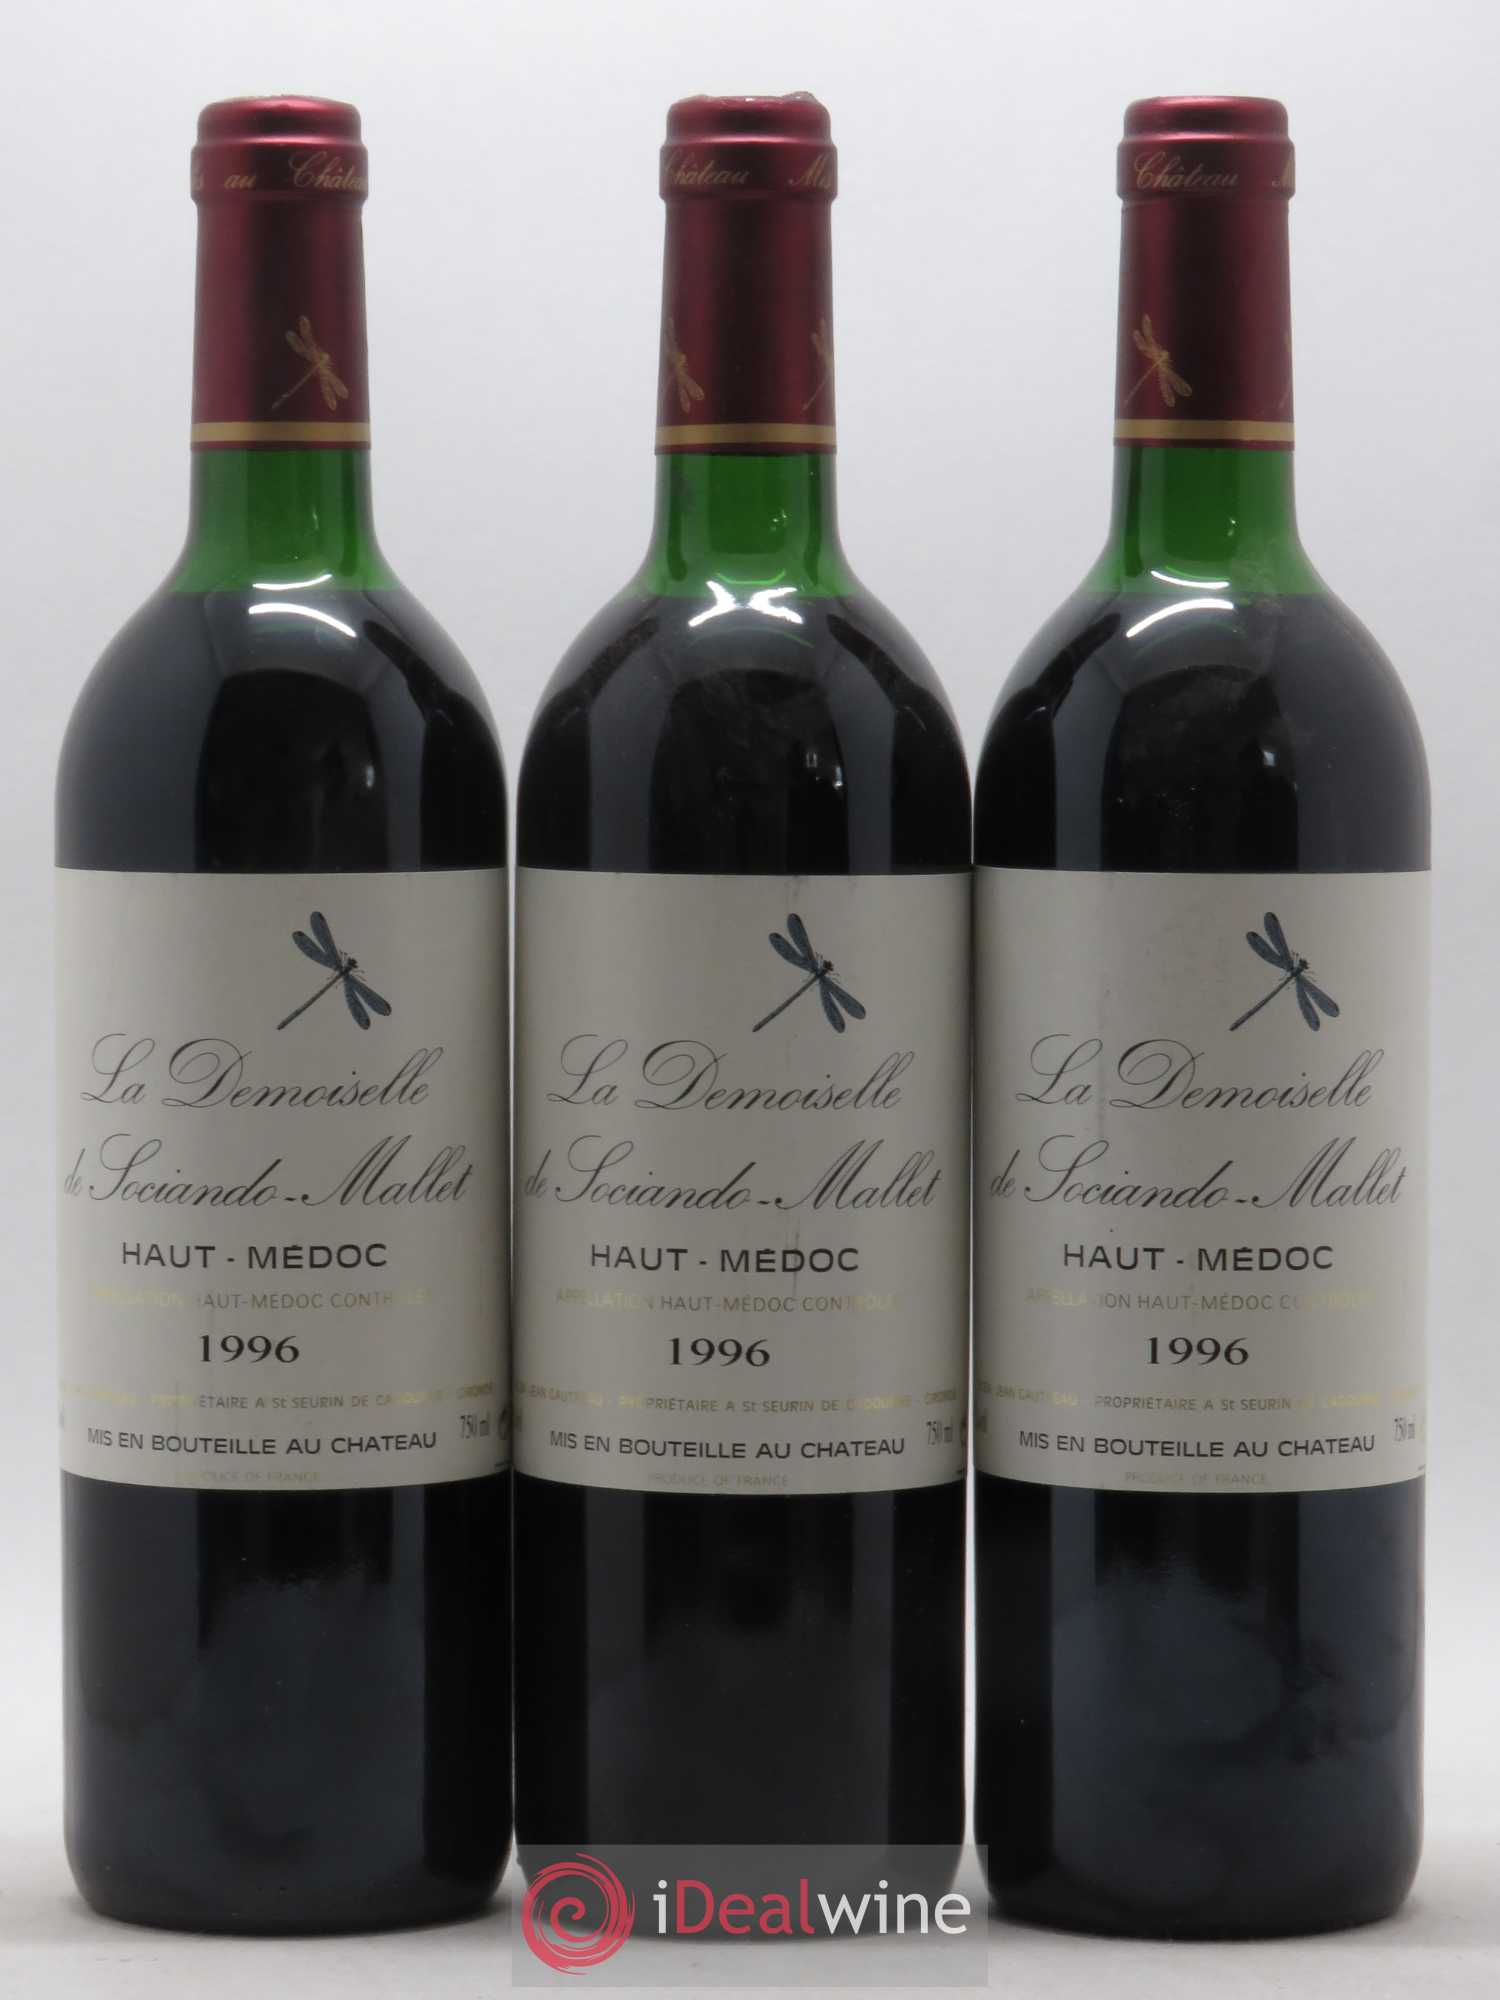 Demoiselle de Sociando Mallet Second Vin  1996 - Lot of 3 Bottles